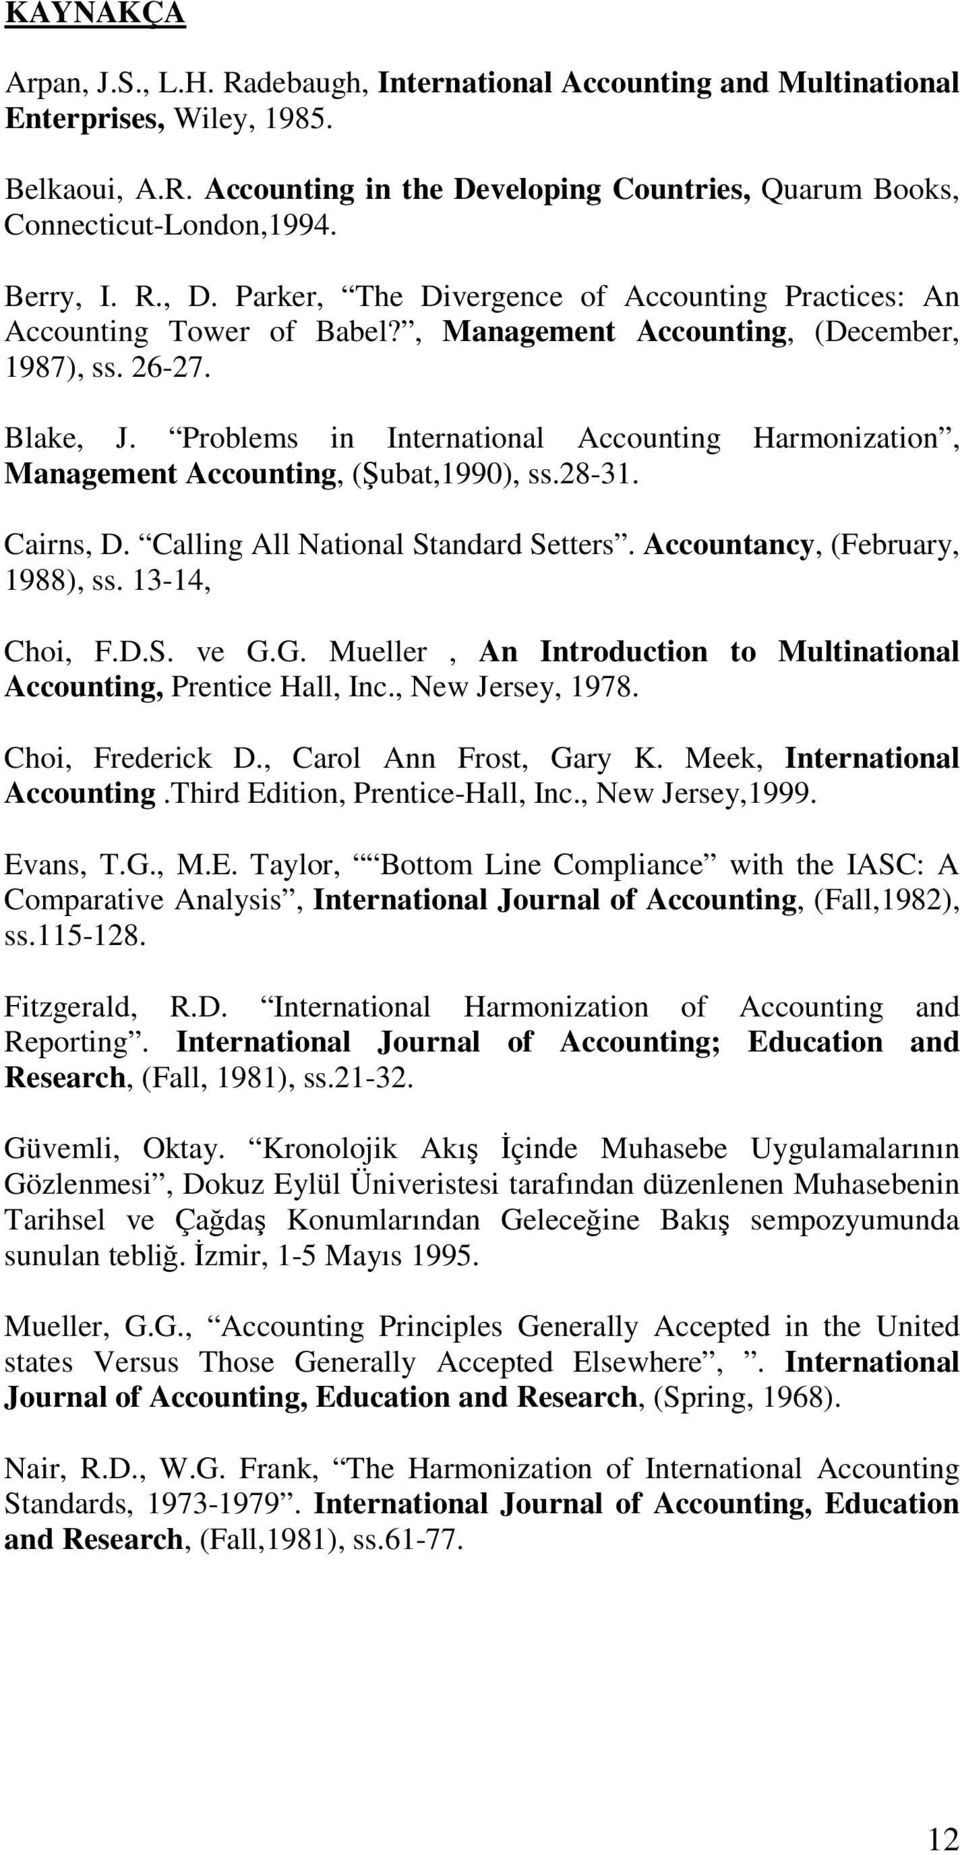 Problems in International Accounting Harmonization, Management Accounting, (Şubat,1990), ss.28-31. Cairns, D. Calling All National Standard Setters. Accountancy, (February, 1988), ss. 13-14, Choi, F.